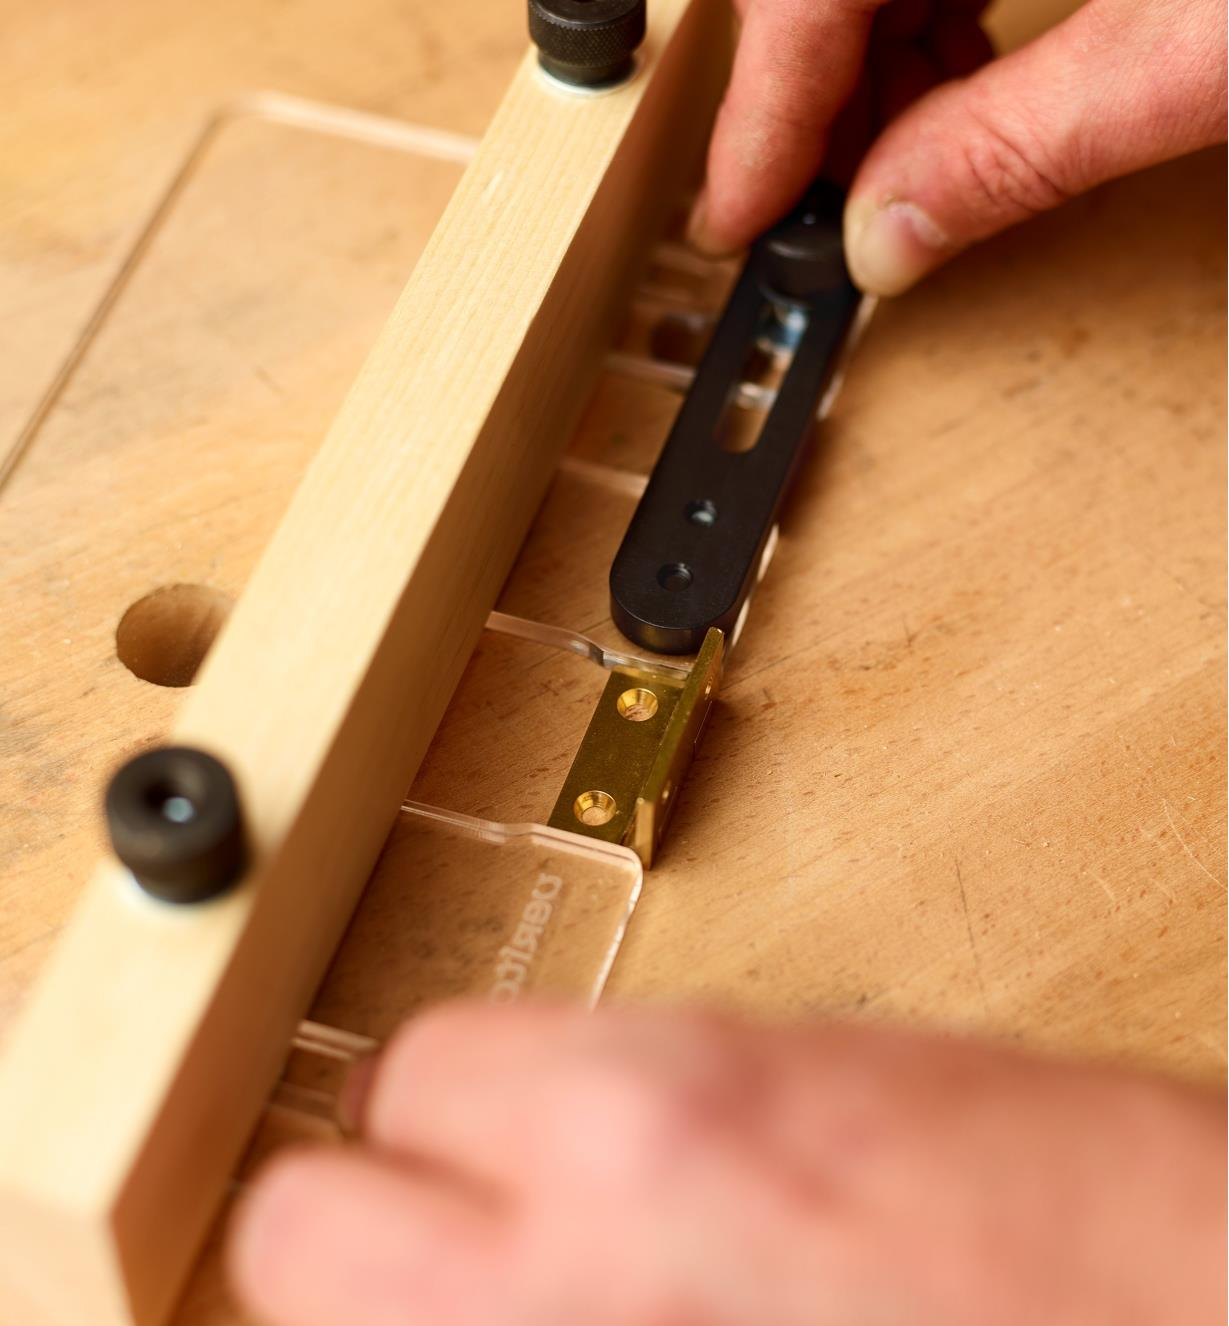 Setting the cabinet hinge template's adjustable opening to match the exact length of a cabinet hinge